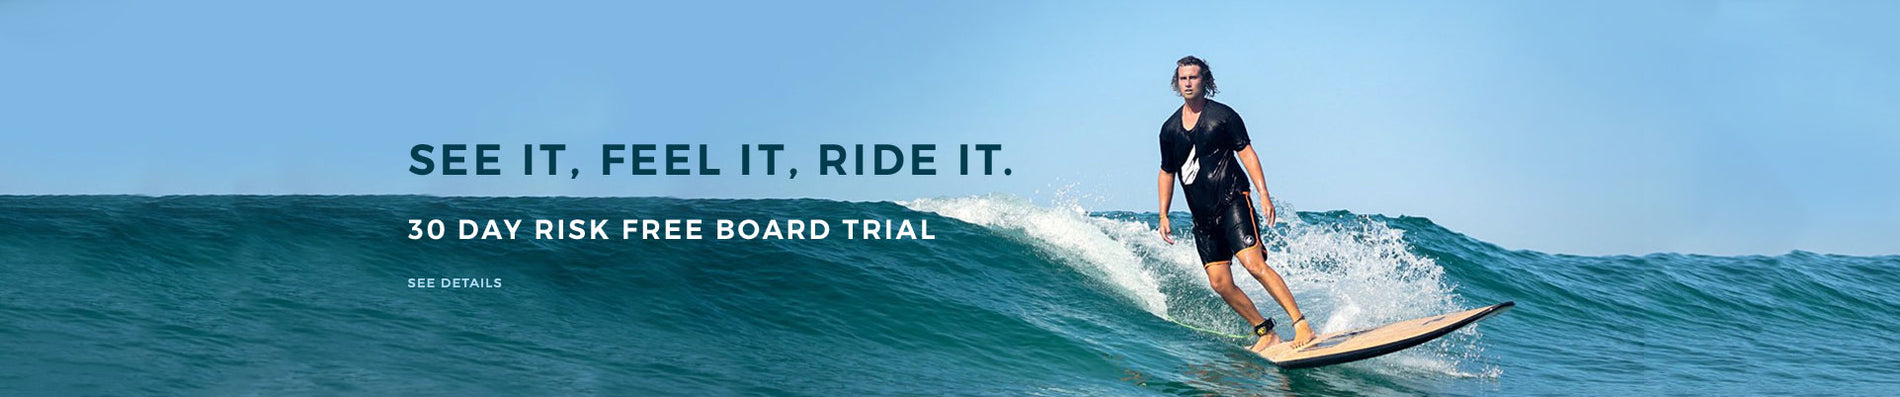 30 day risk free board trial